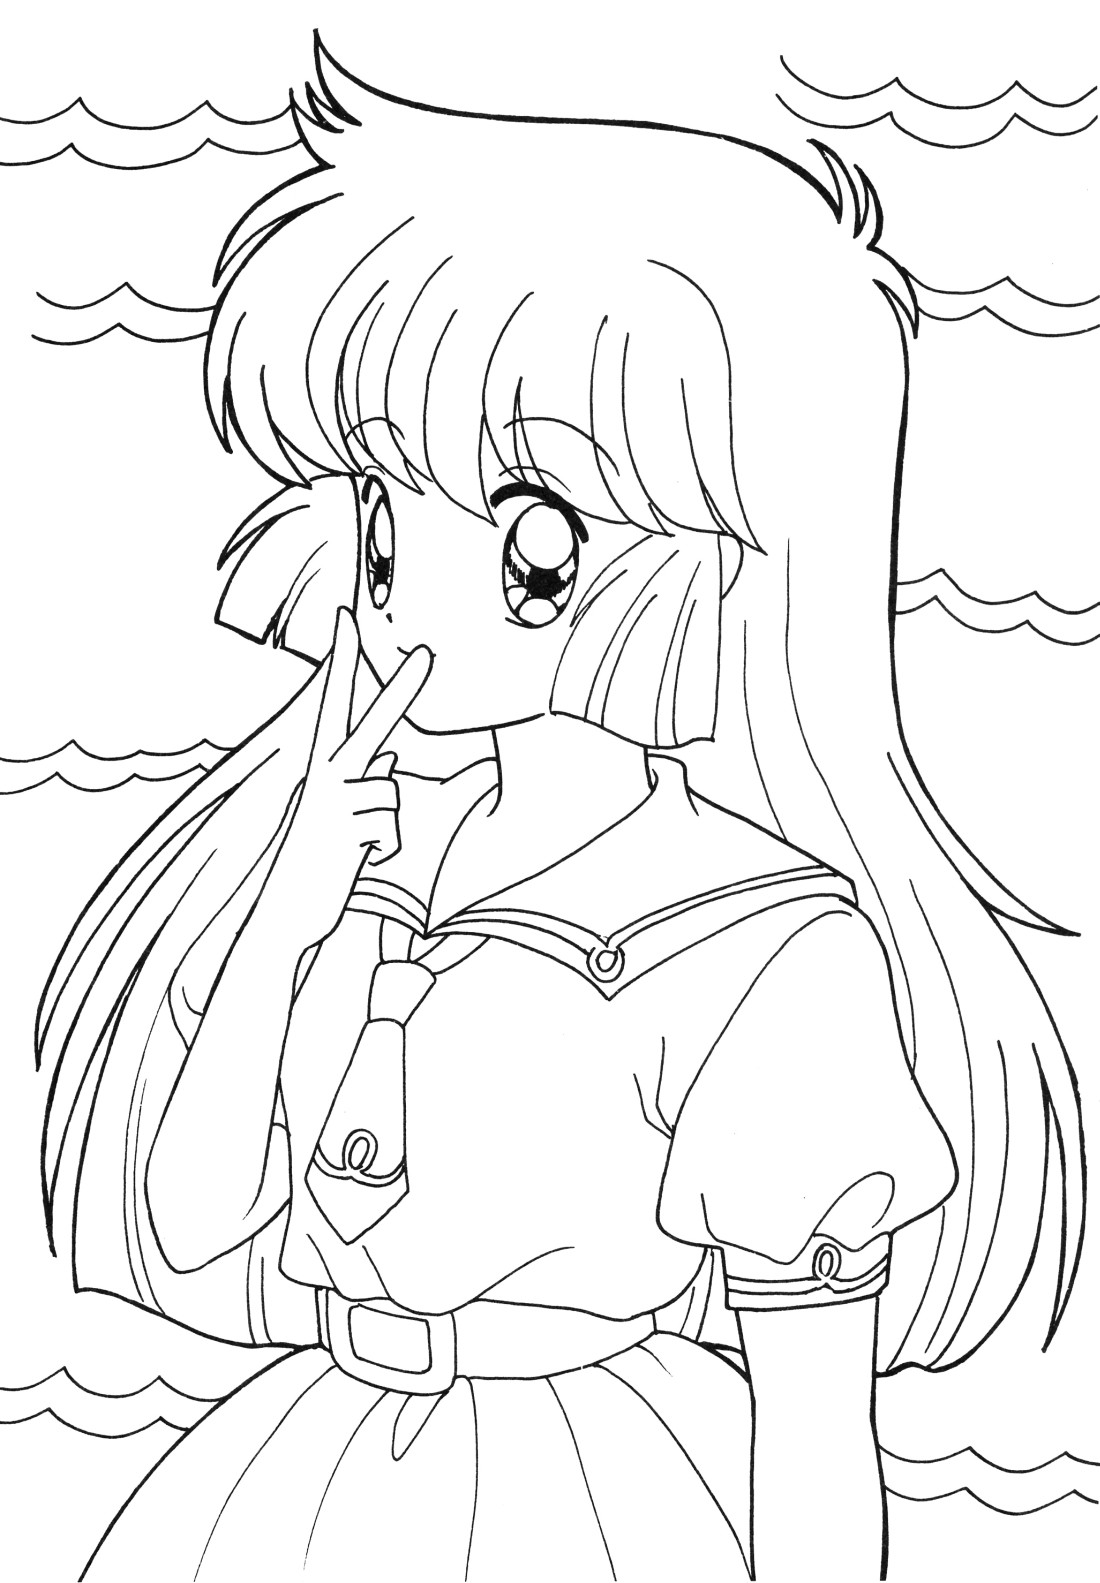 Anime School Girl Coloring Pages  Inspirational Quotes Coloring Pages at GetColorings